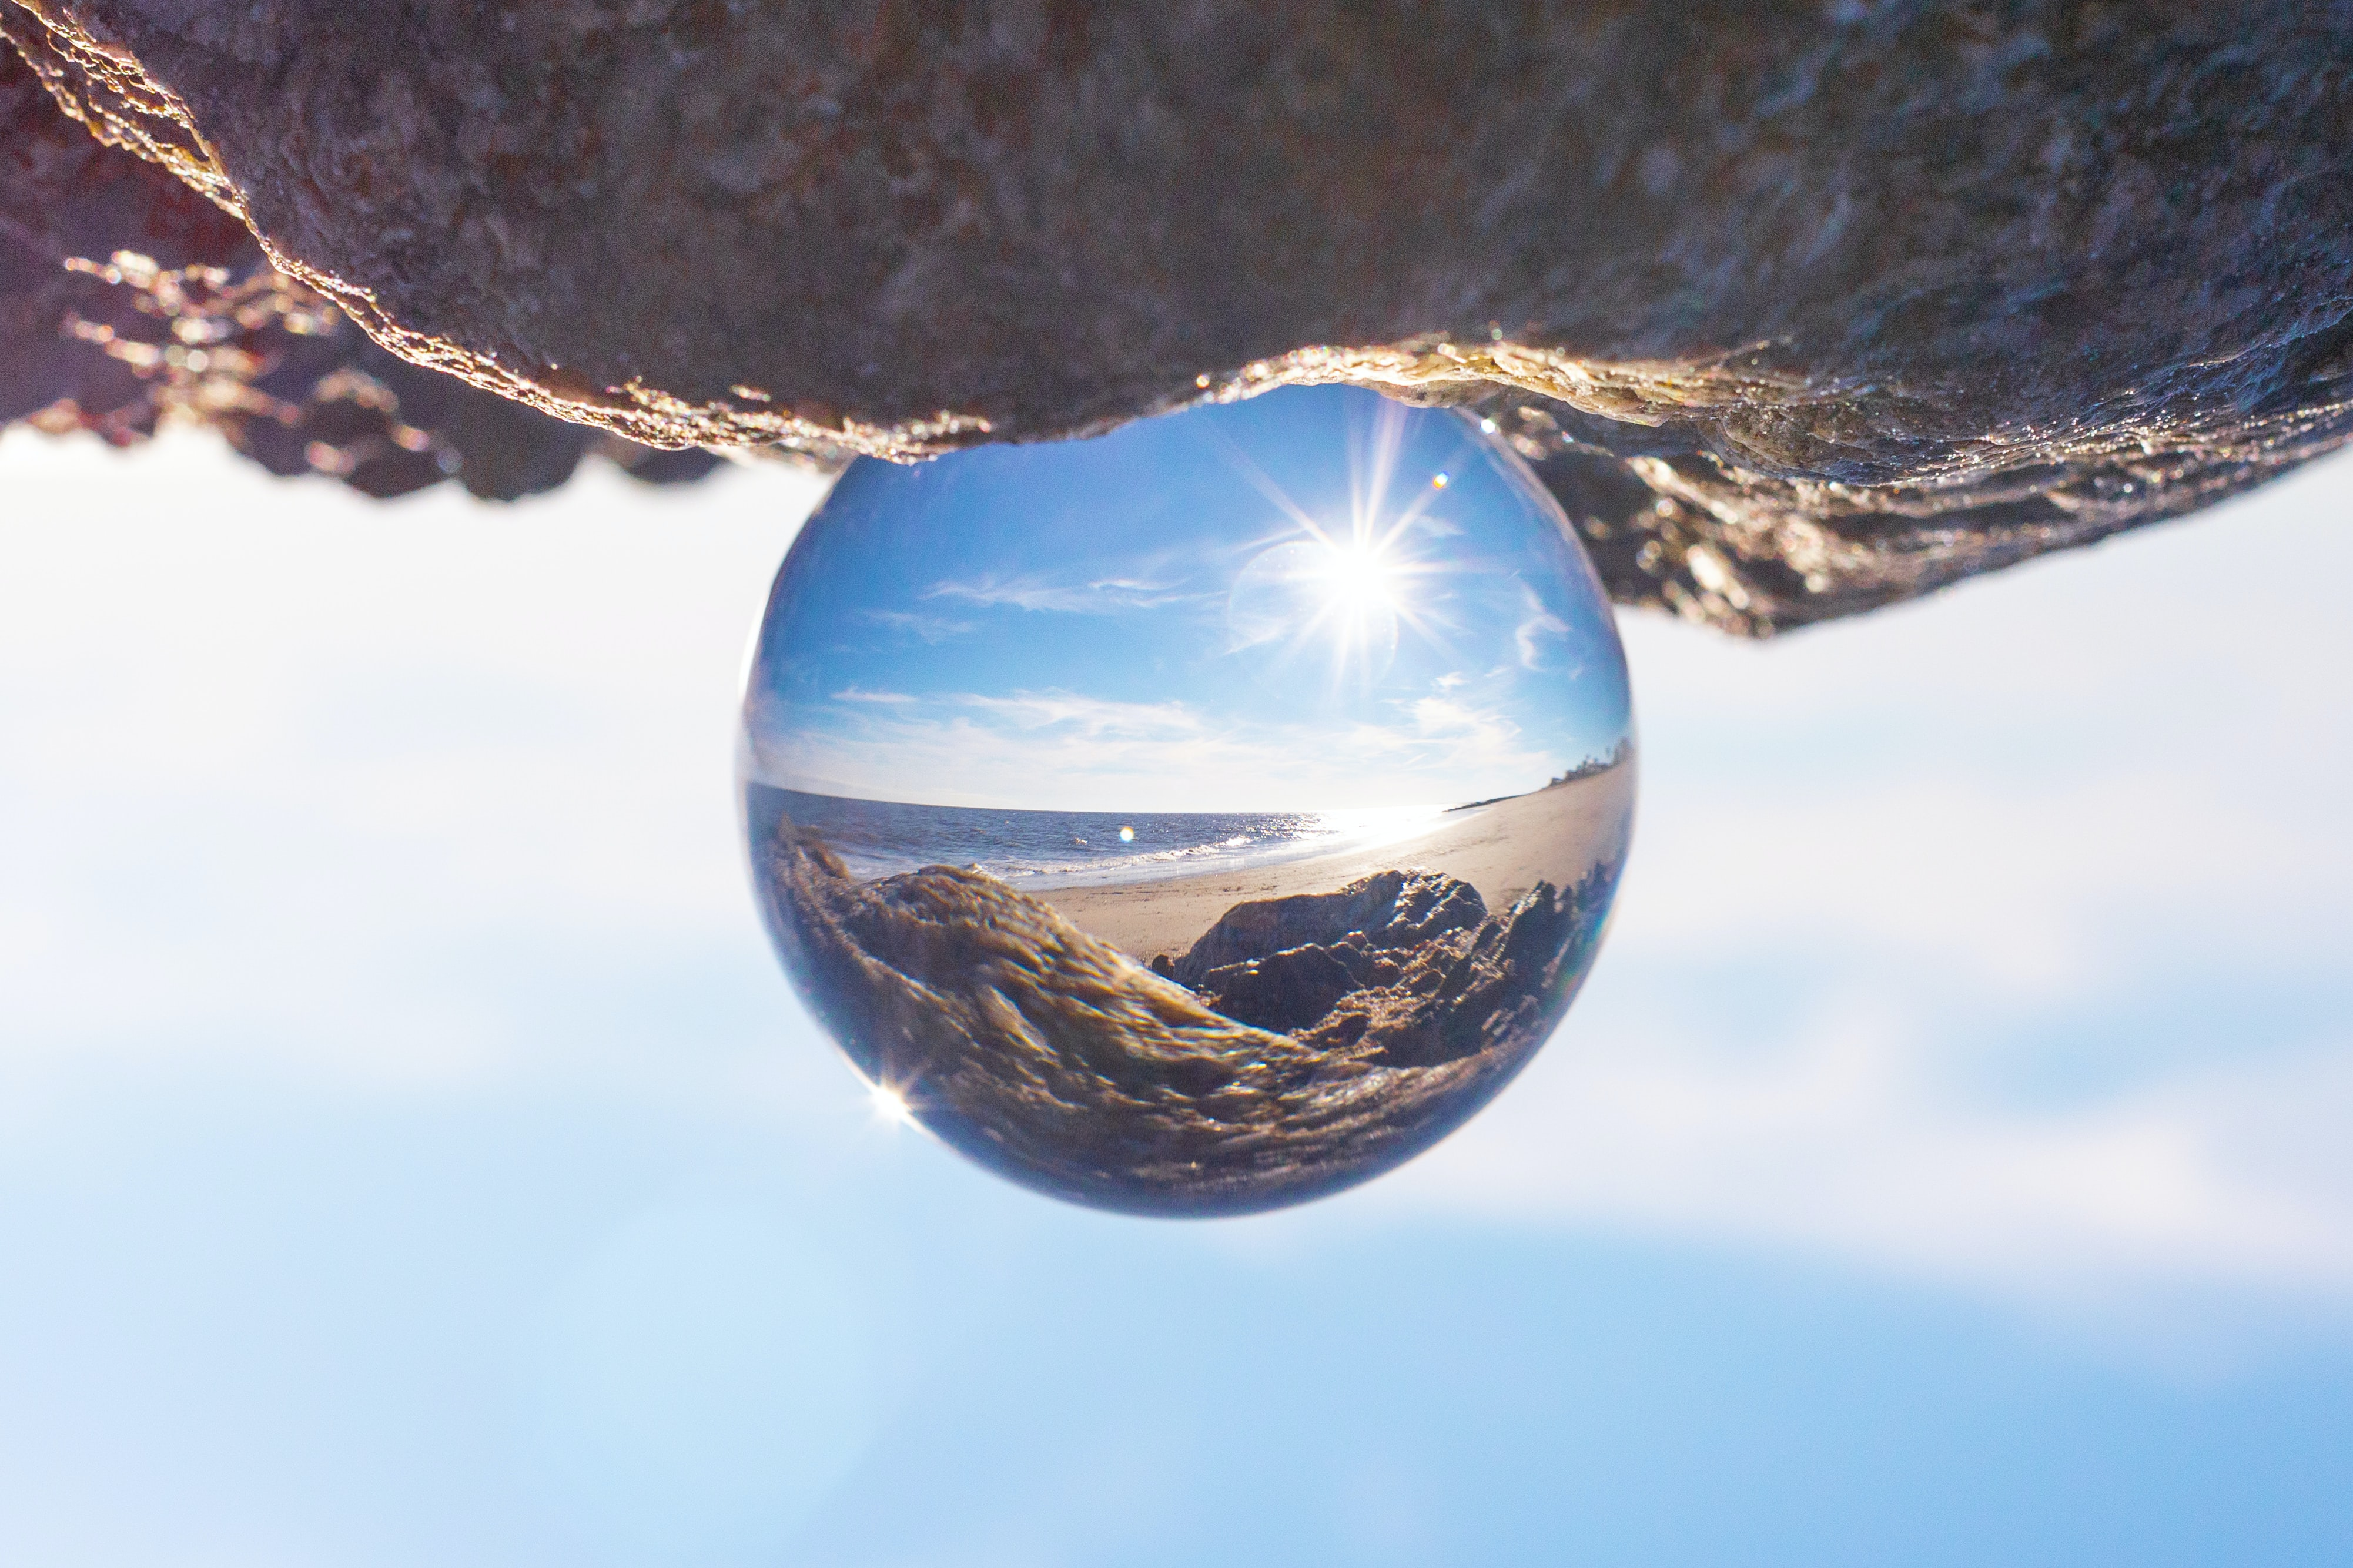 crystal ball on rock formation